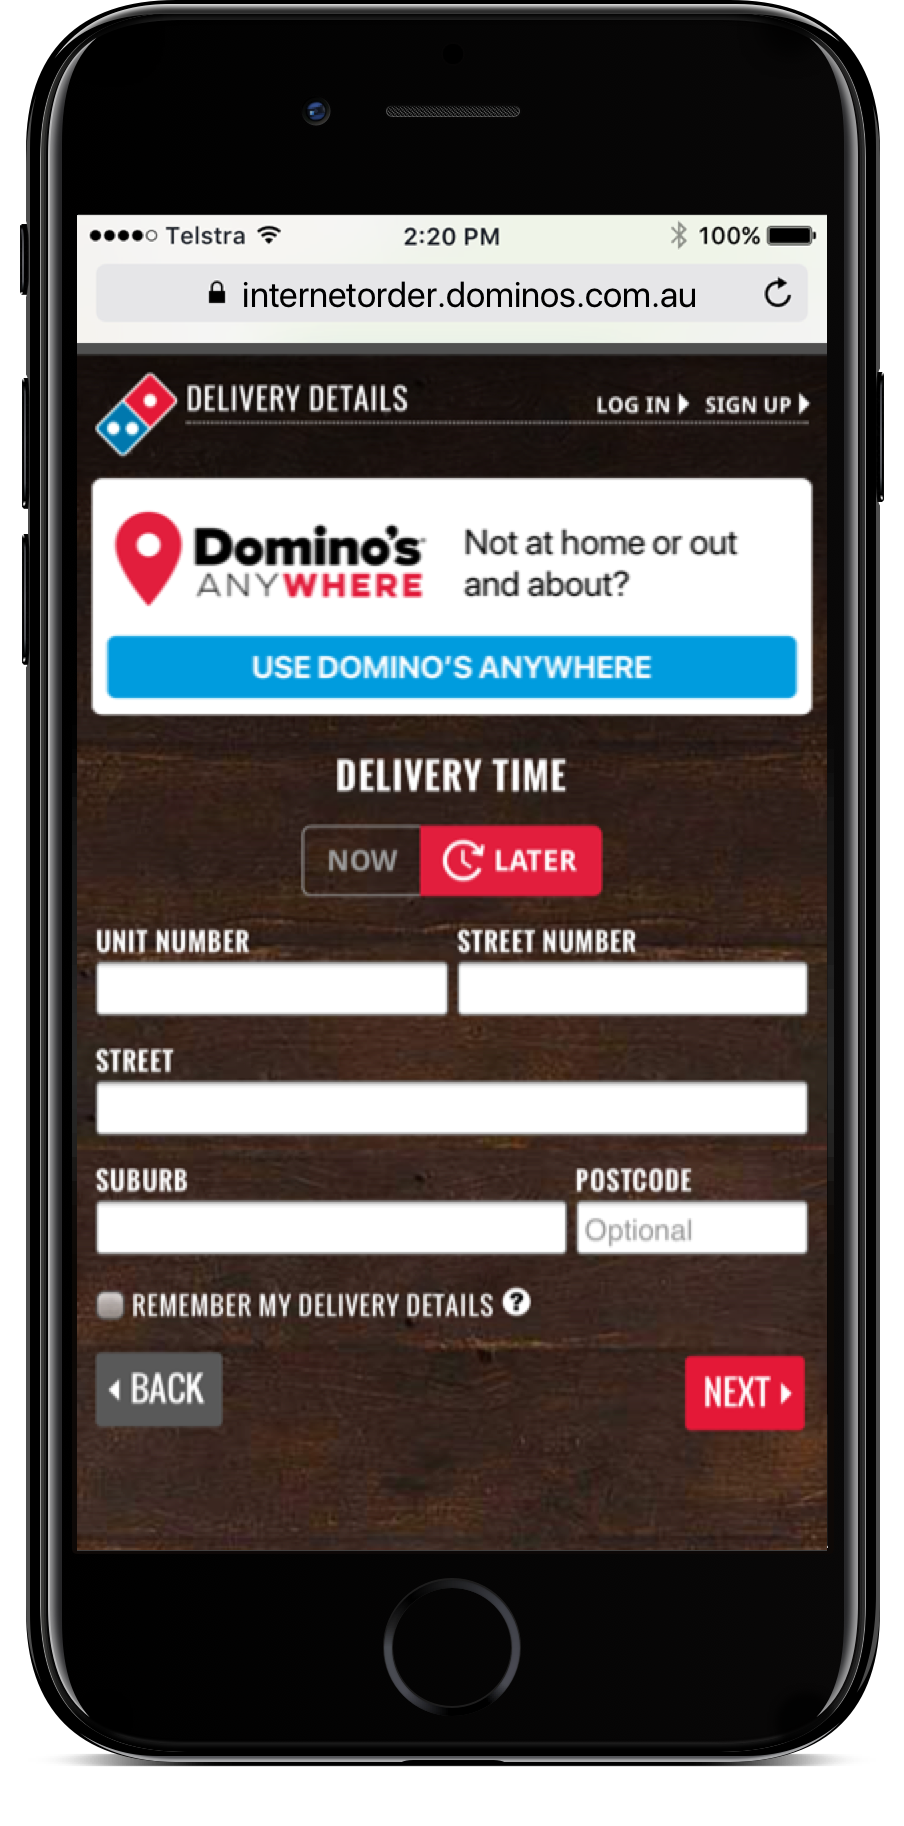 Just select Domino's Anywhere on the Delivery page -